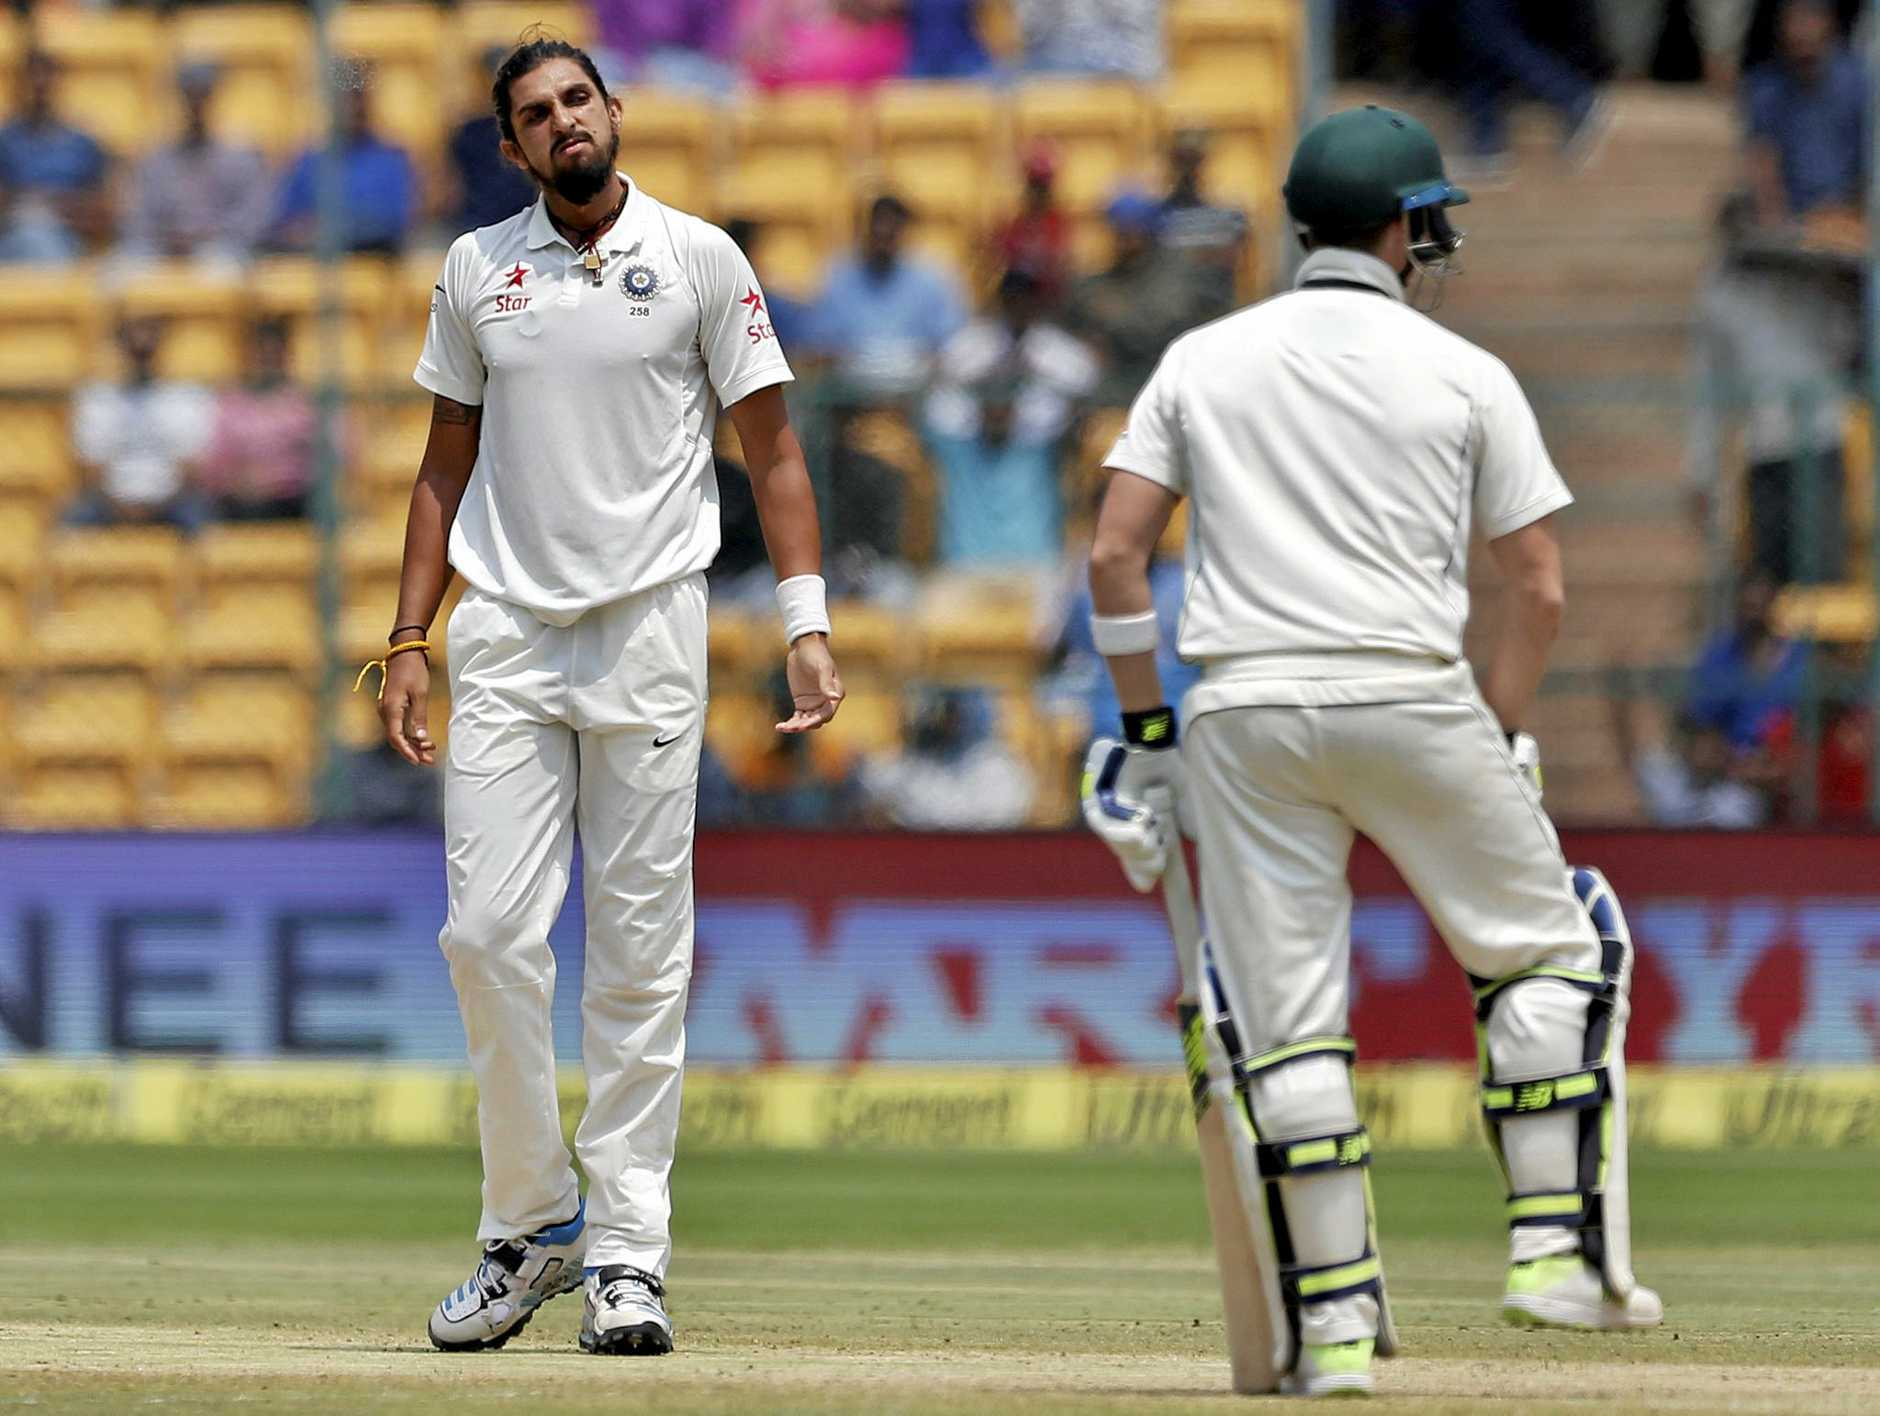 Ishant Sharma impressed against South Africa. (AP Photo/Aijaz Rahi)